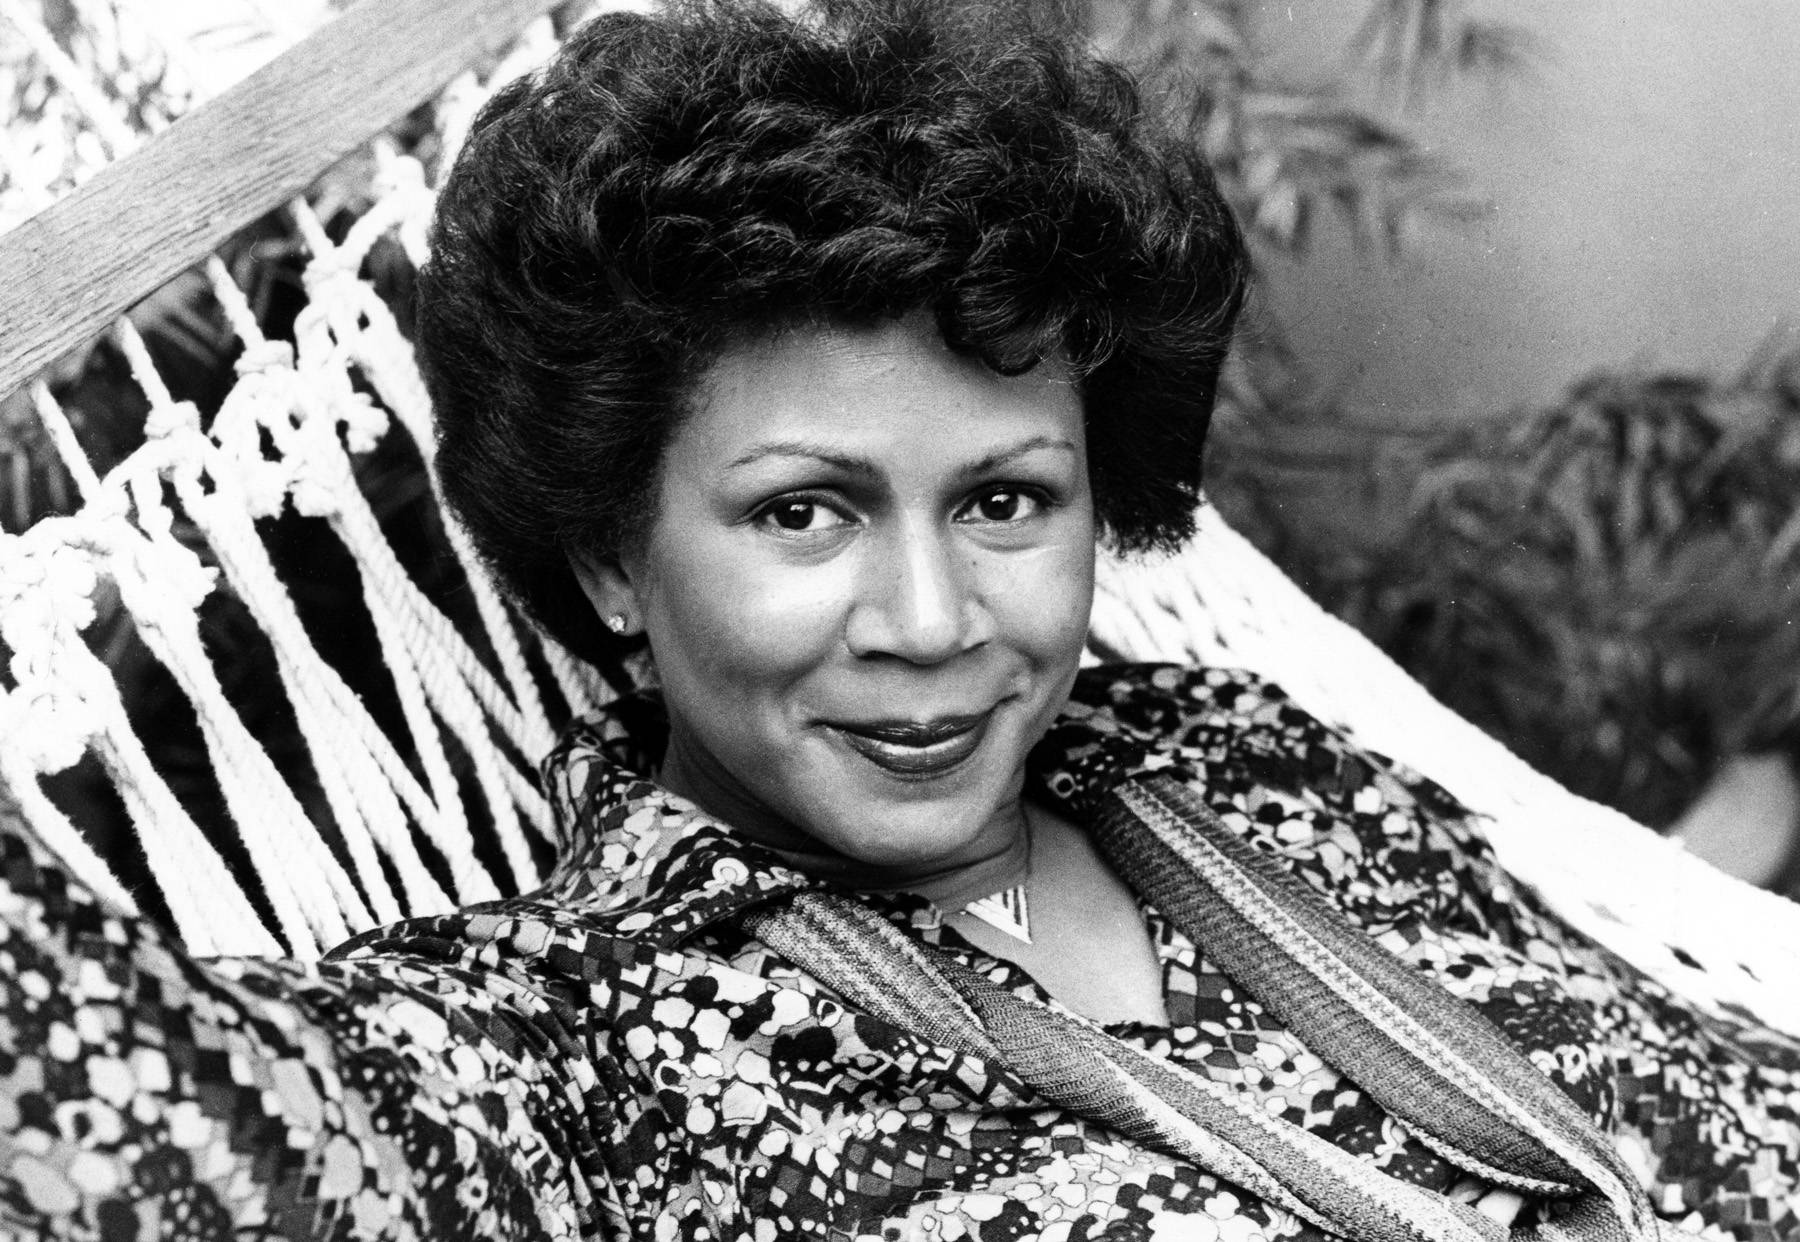 """Minnie Riperton, 'Inside My Love'  - The gorgeous Rhodes-driven coda to Minnie's 1975 classic was first resurrected by A Tribe Called Quest for their """"Lyrics to Go,"""" and then was flipped by J. Dilla and many others. (Photo: Michael Ochs Archives/Getty Images)"""